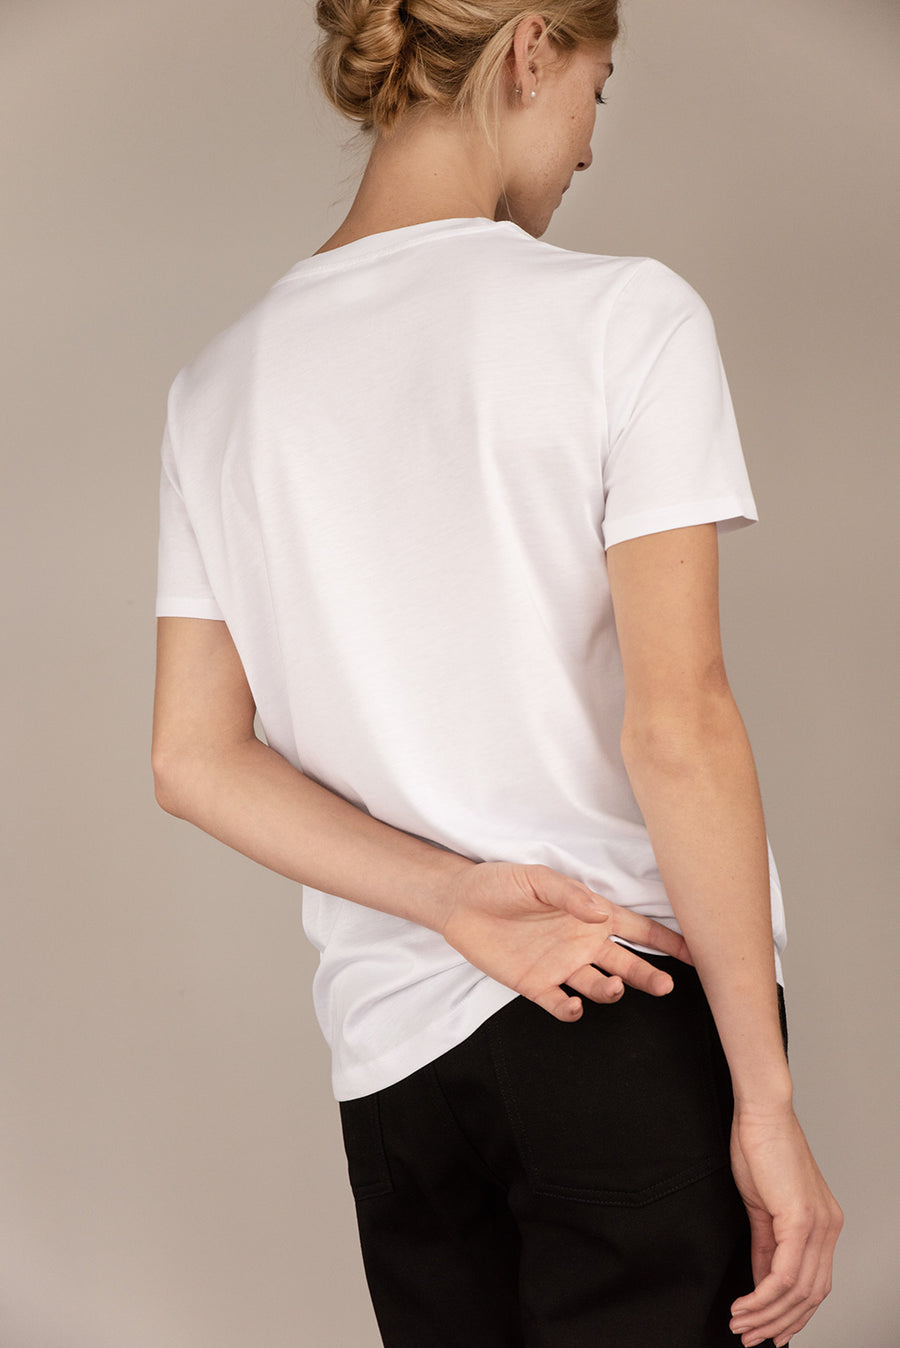 Classic Organic Cotton T-shirt in White